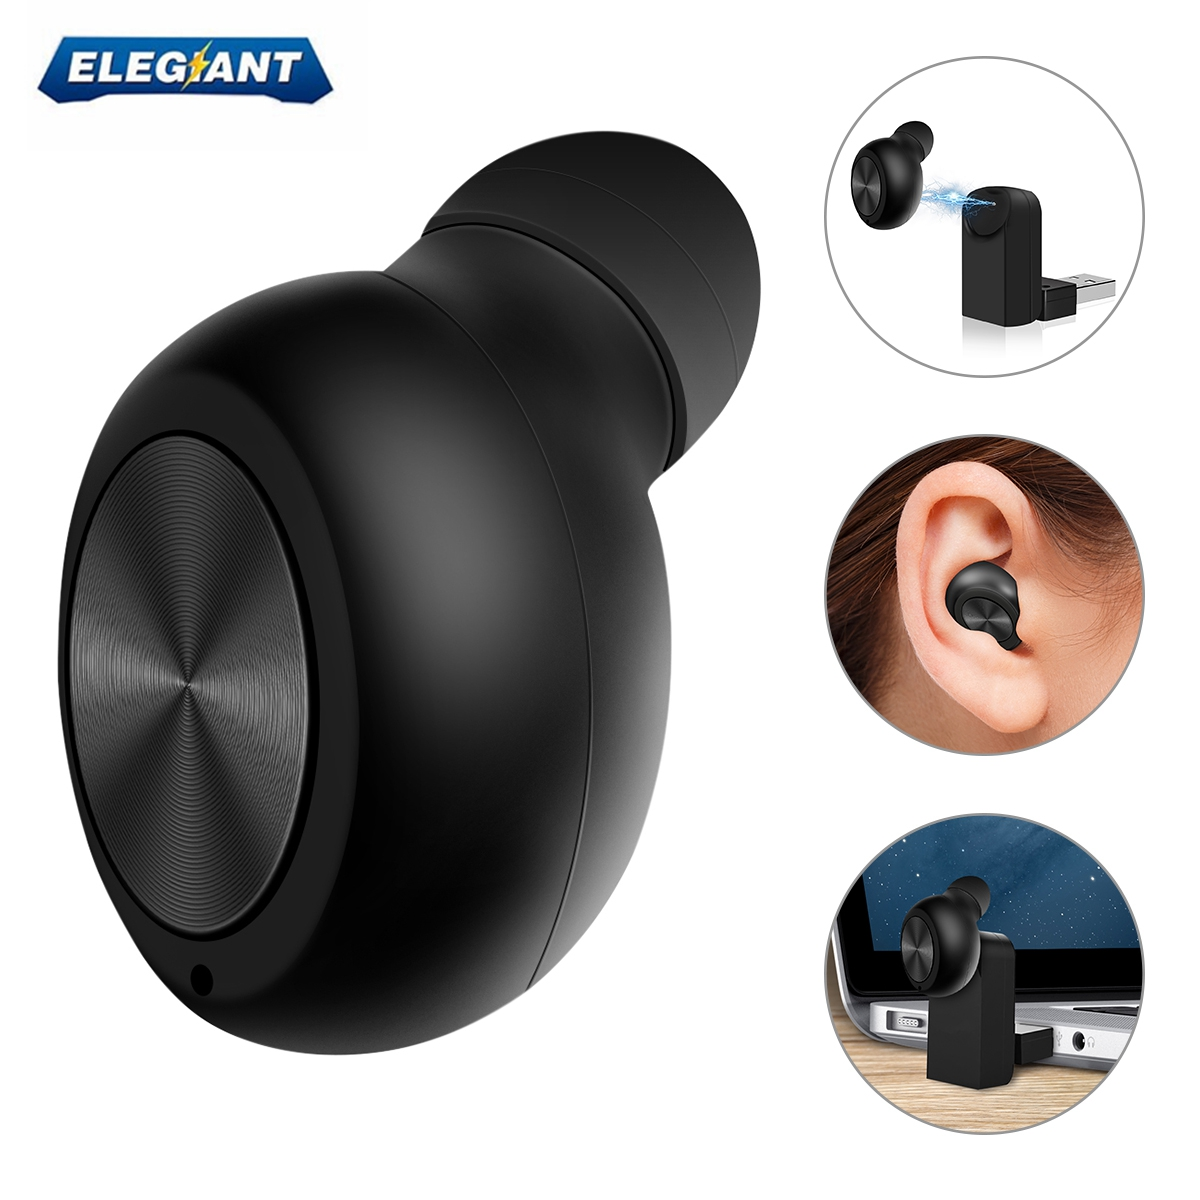 ELEGIANT écouteurs Wireless bluetooth Earbuds Headphones Magnetic USB Charging Mini In-ear Headset Earbud Earphone Hands-free With Noise Reduction Built-in Mic for Office Business